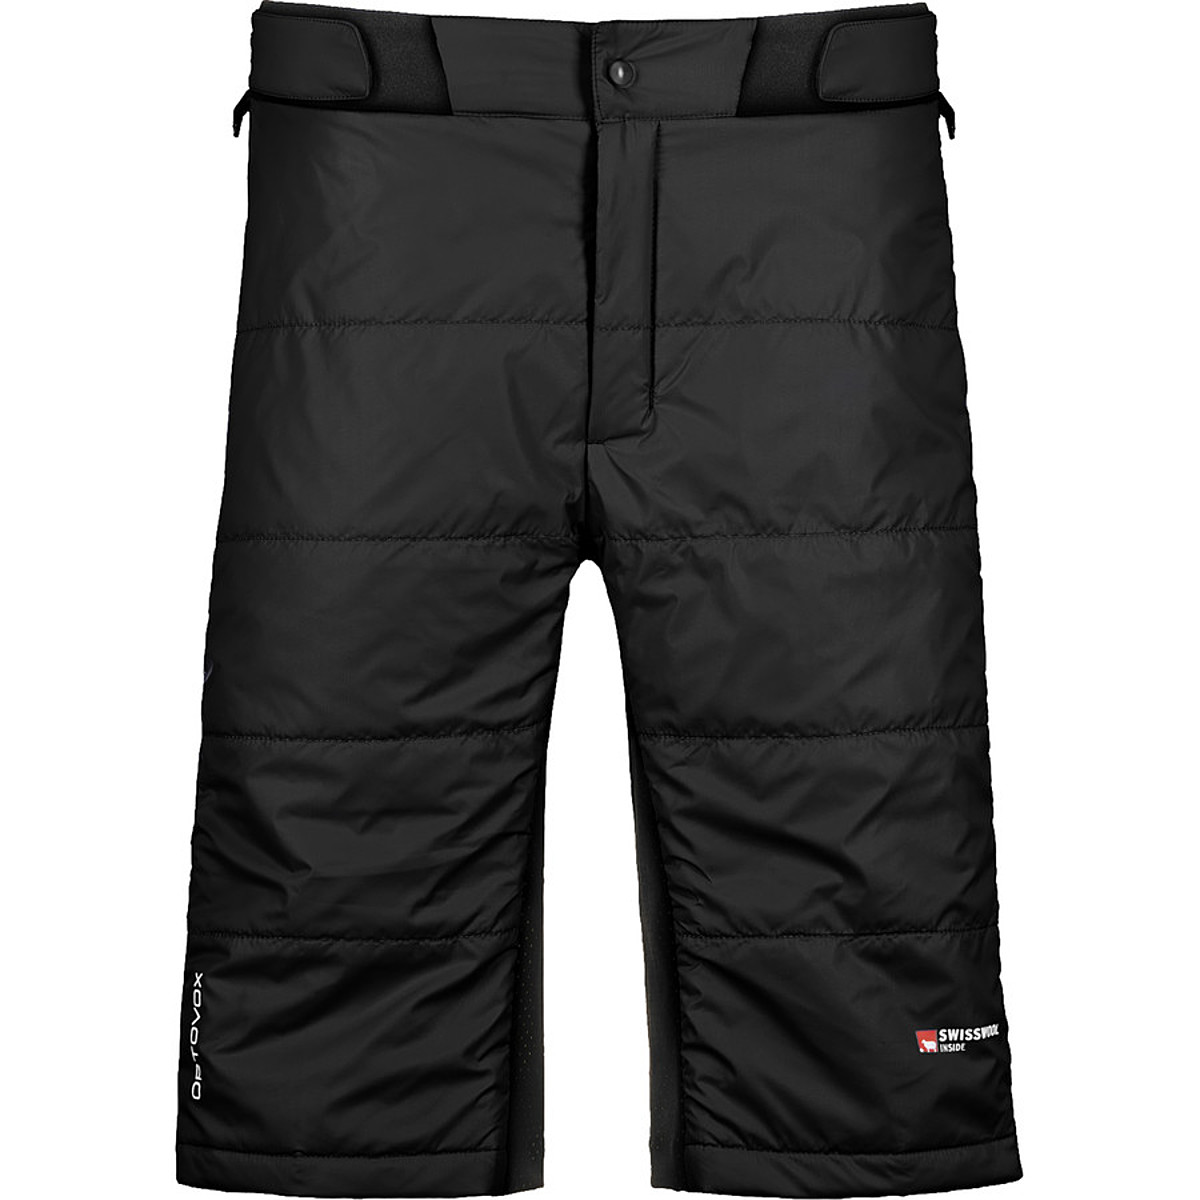 Ortovox Piz Boe Light Tec Insulated Short